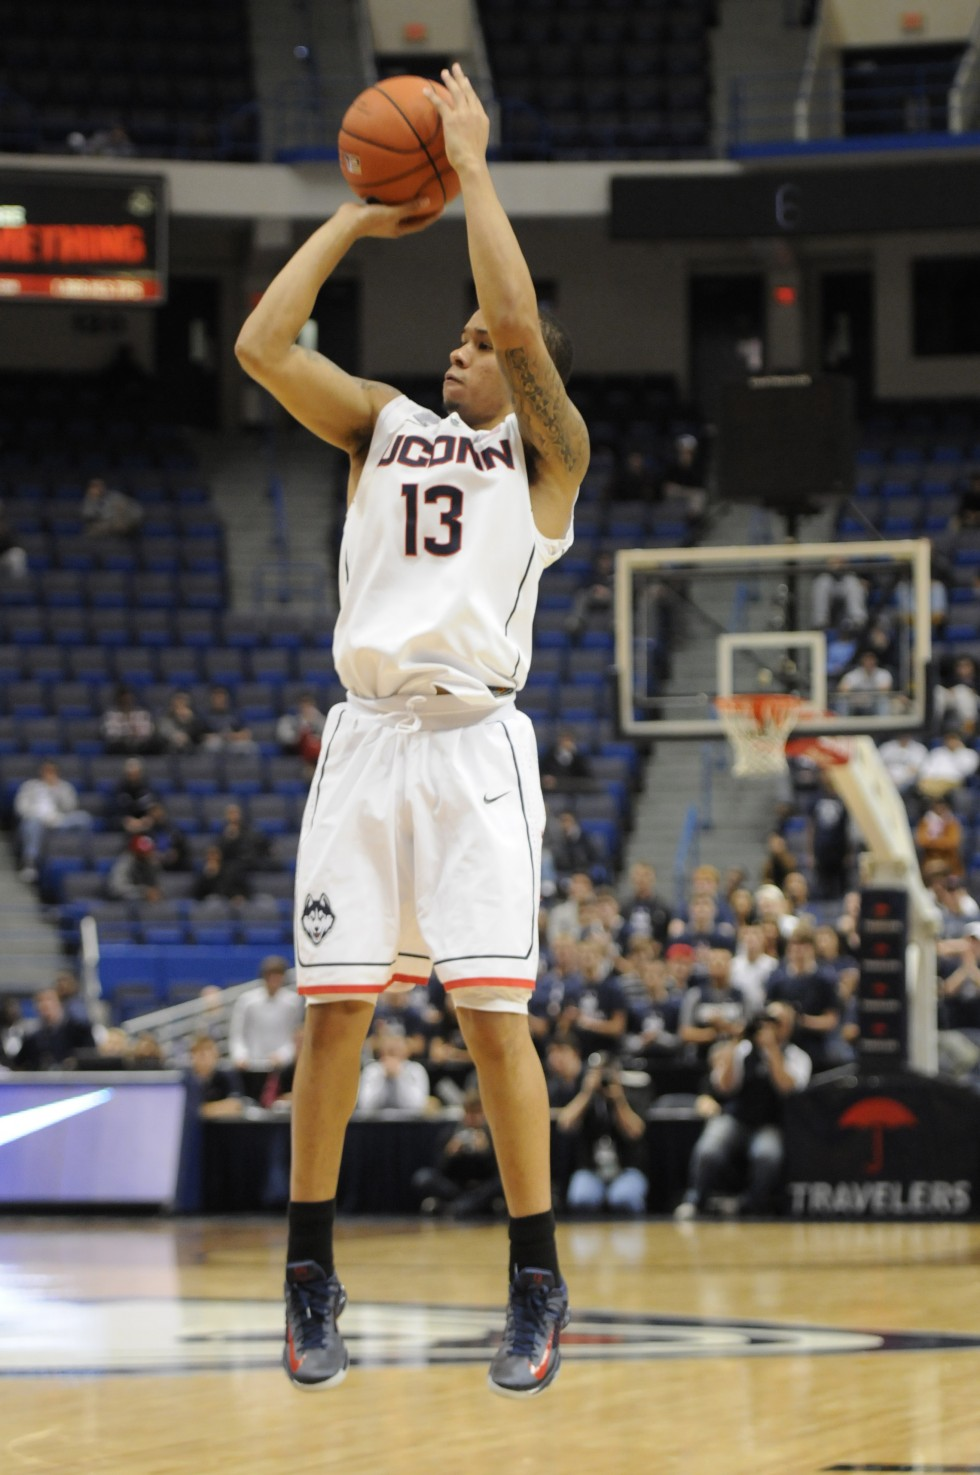 Huskies Senior guard Shabazz Napier, 13, makes a there point basket late in the second half.